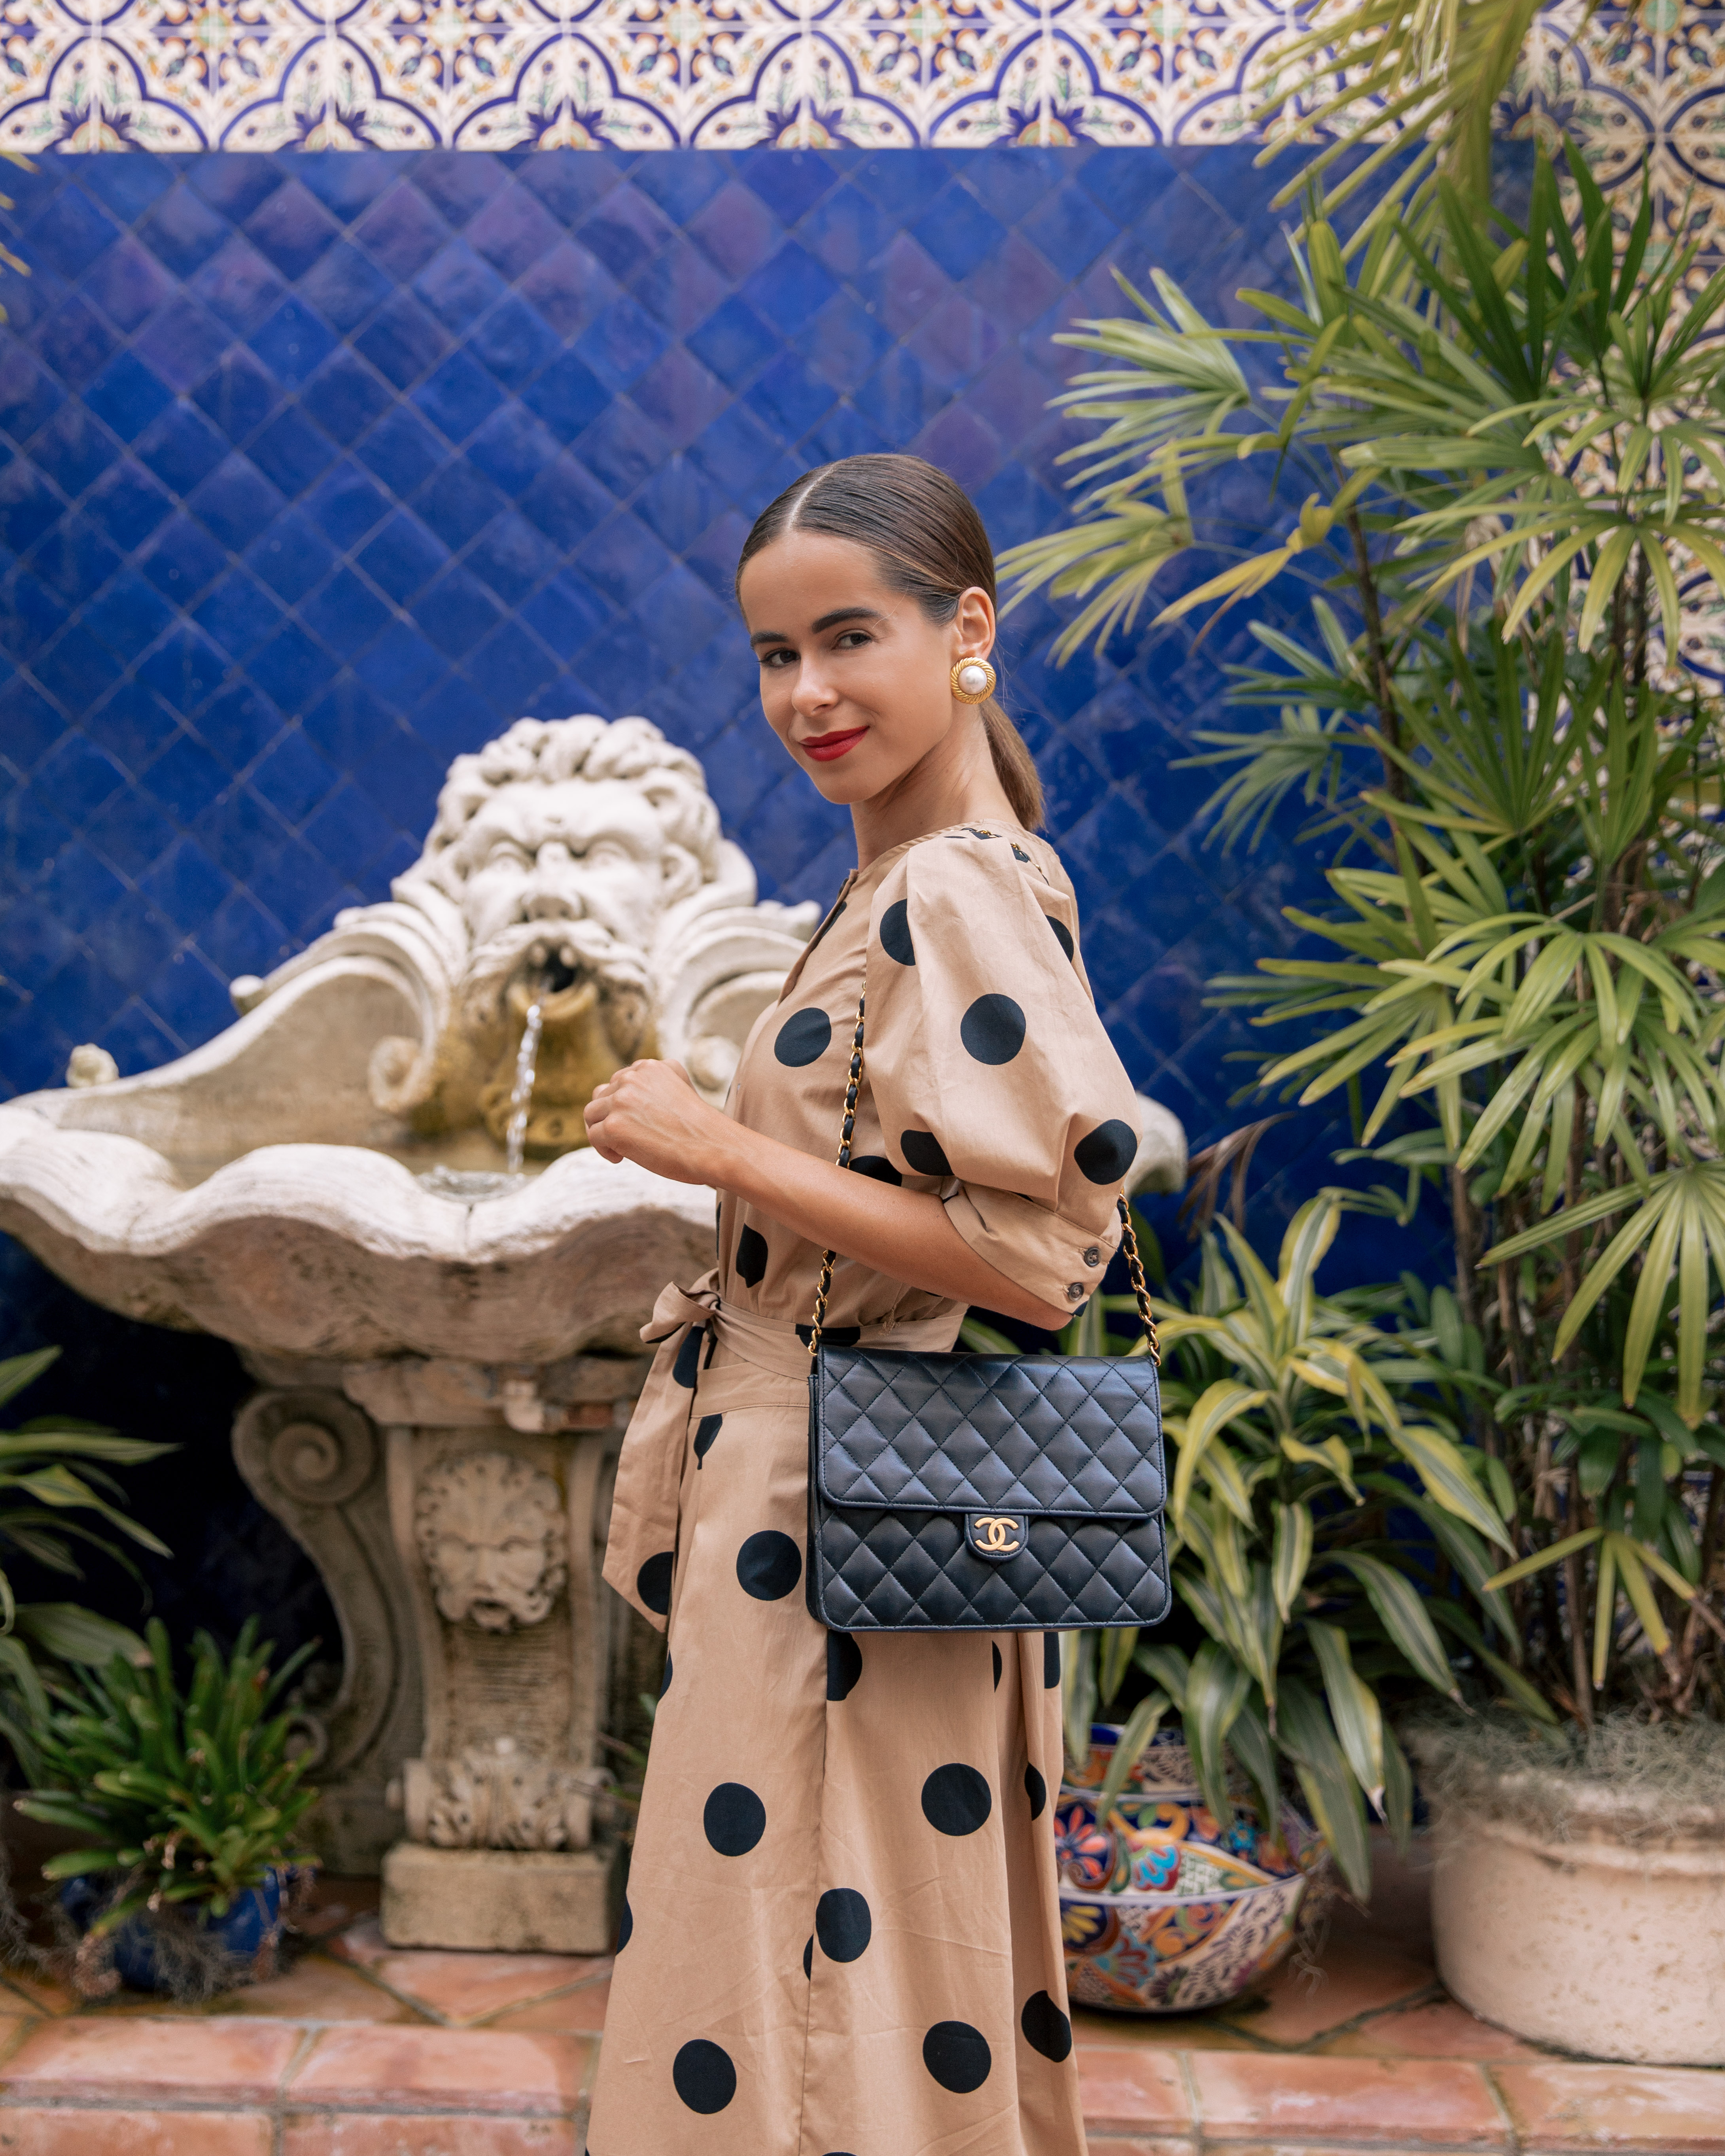 Fashion Blogger Stephanie Hill from The Style Bungalow is Ready for a New Chanel